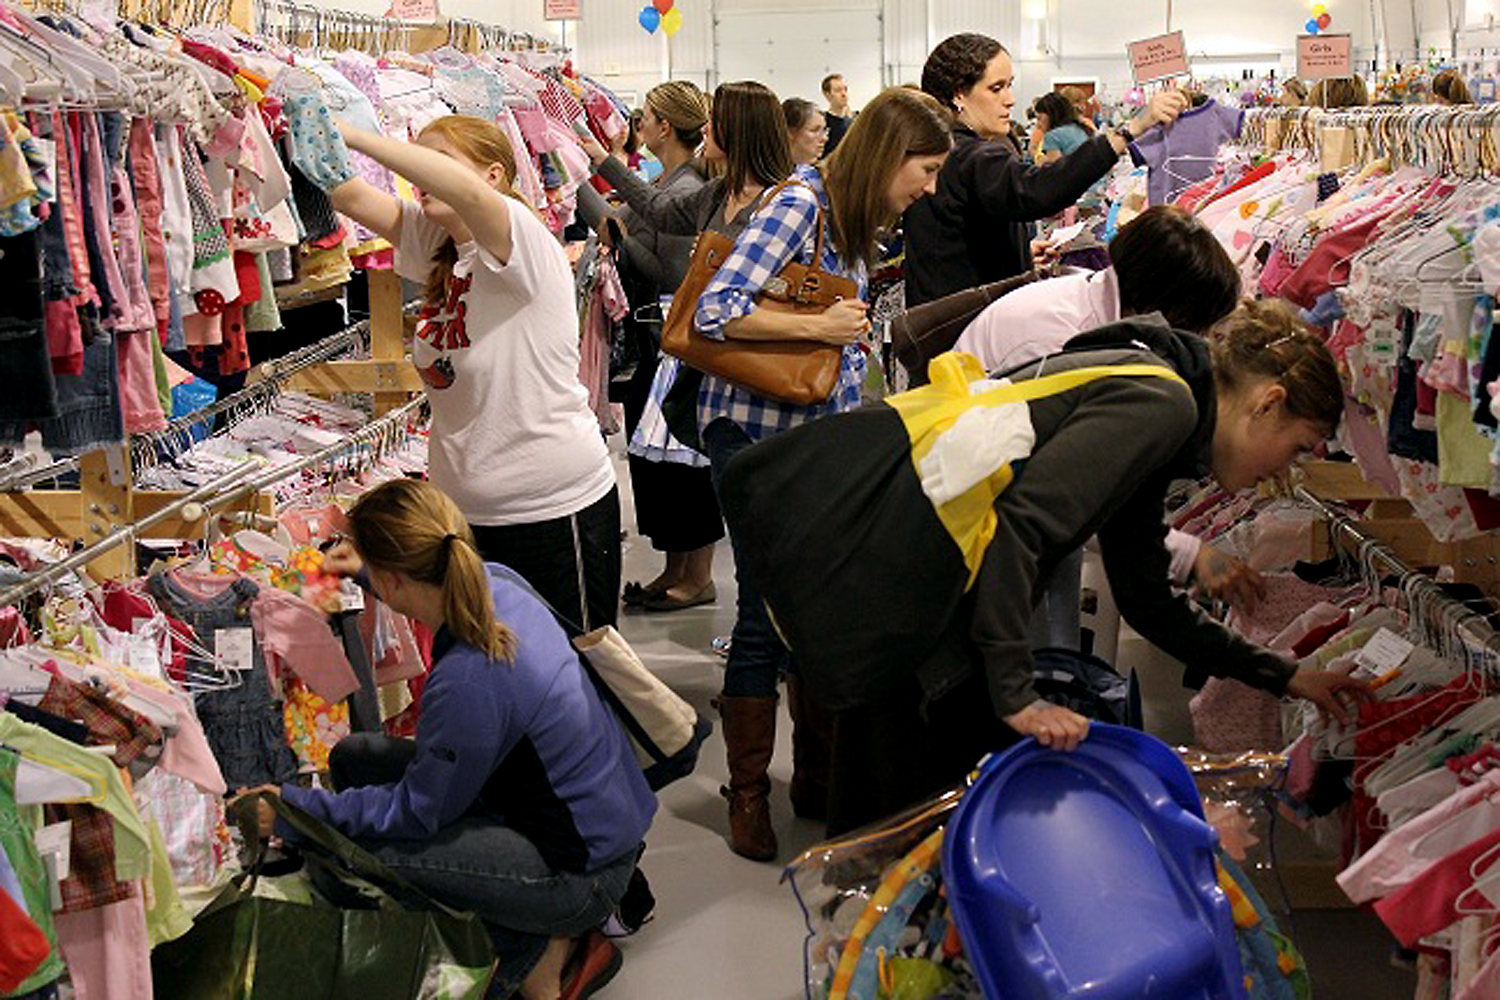 Organizers estimate 2,500 shoppers will attend this year's Hamilton County Kids Sale Sept. 12 through 14 at the Hamilton County 4-H Fairgrounds, 2003 E. Pleasant St. (Photo submitted)